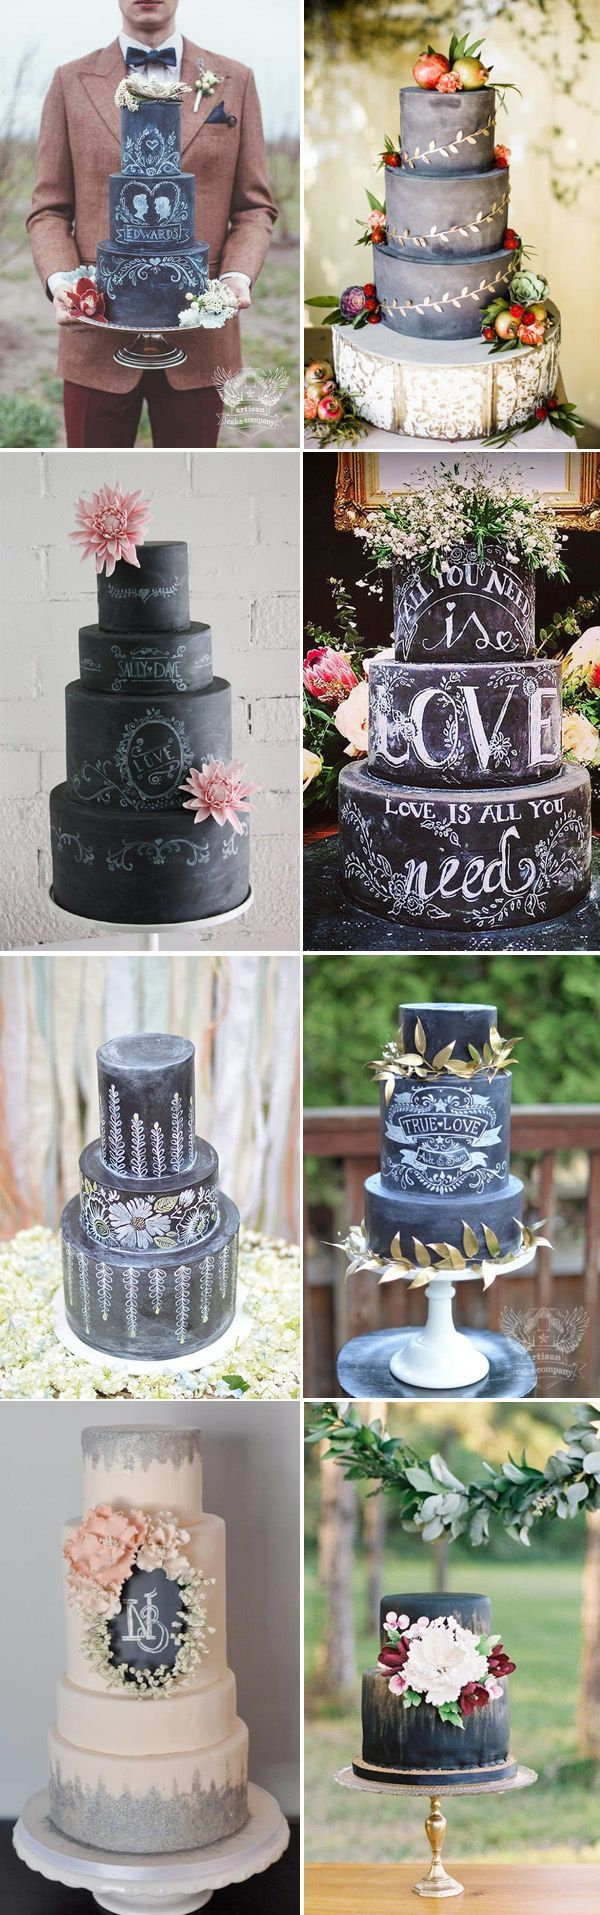 air Chalkboard Ideas    Wedding Creative Cakes and  with   footlocker Cake Rustic Ideas Cake Wedding   retro Wedding  jordan Tips